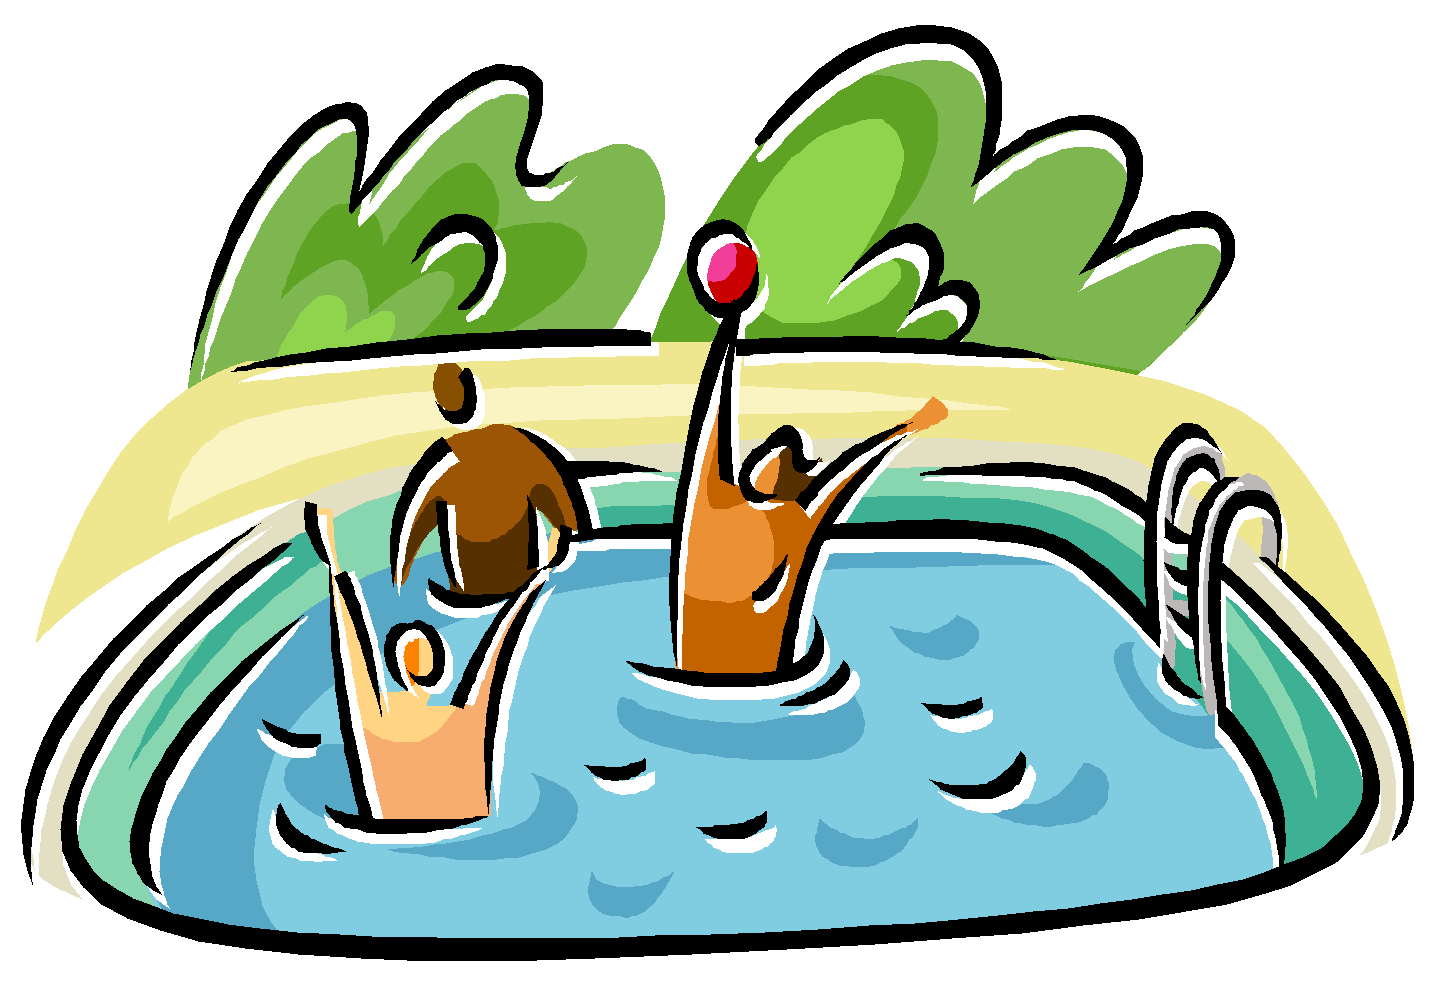 Swimming pool cartoon clipart clipart suggest for Free clipart swimming pool party